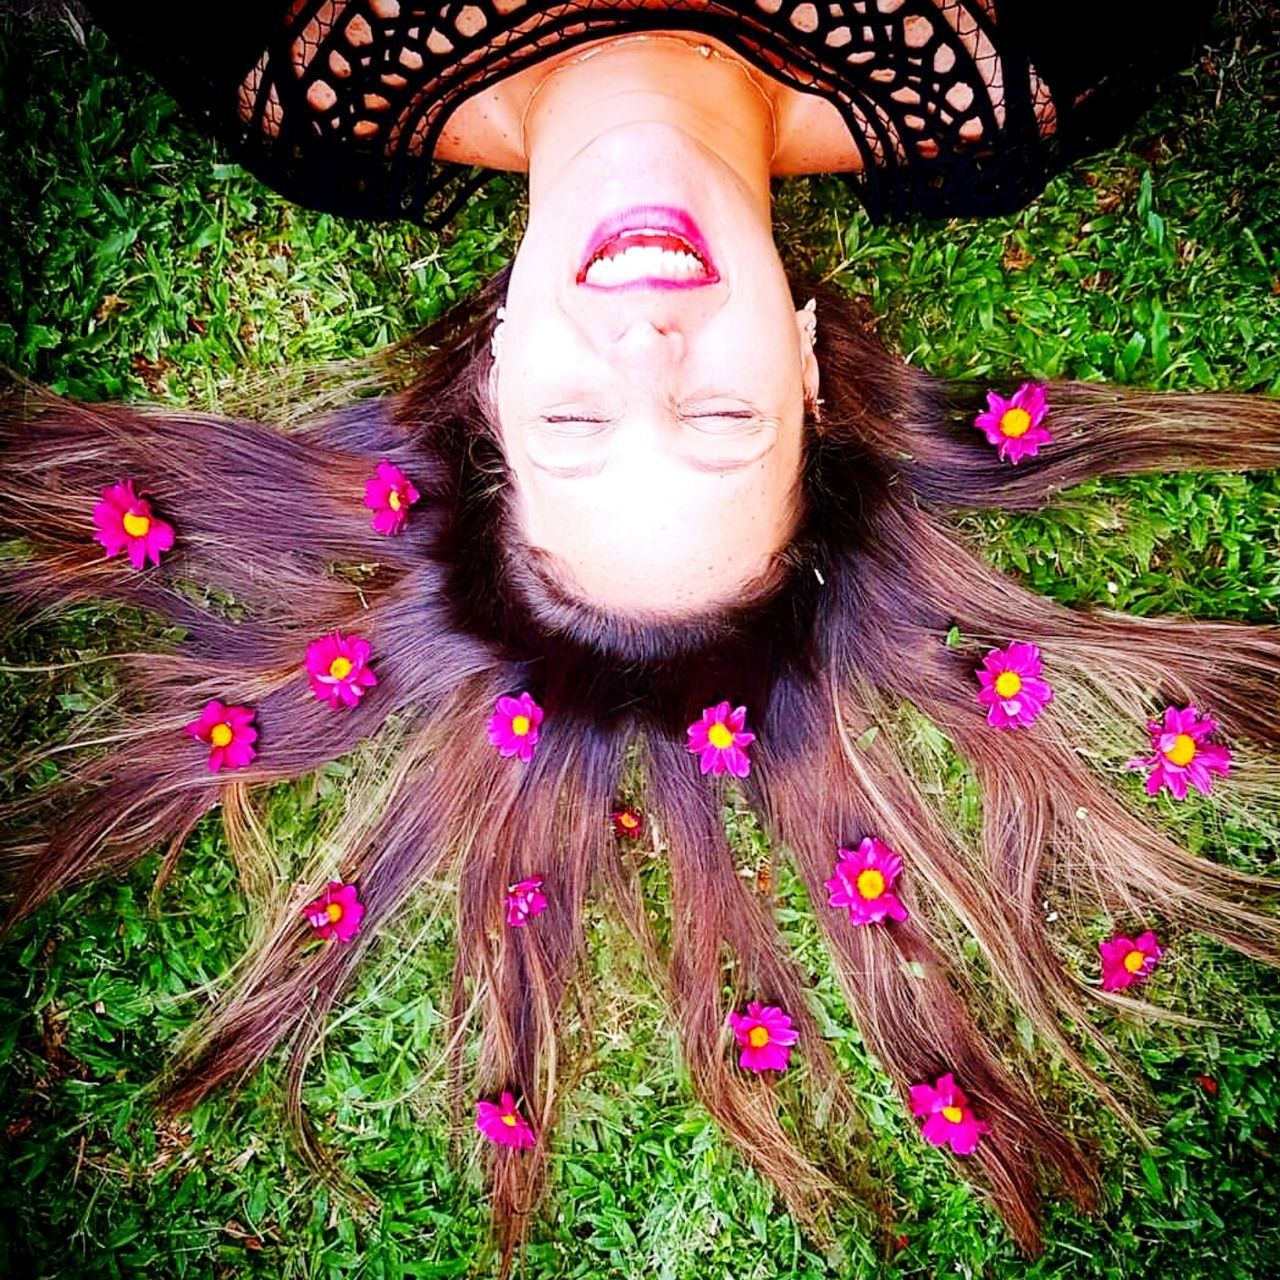 flower, one person, young adult, eyes closed, beauty, one young woman only, lying down, beautiful woman, one woman only, real people, lying on back, young women, only women, nature, adult, headshot, grass, lifestyles, portrait, human body part, people, relaxation, outdoors, human face, beautiful people, freshness, adults only, women, fragility, happiness, beauty in nature, close-up, day, flower head